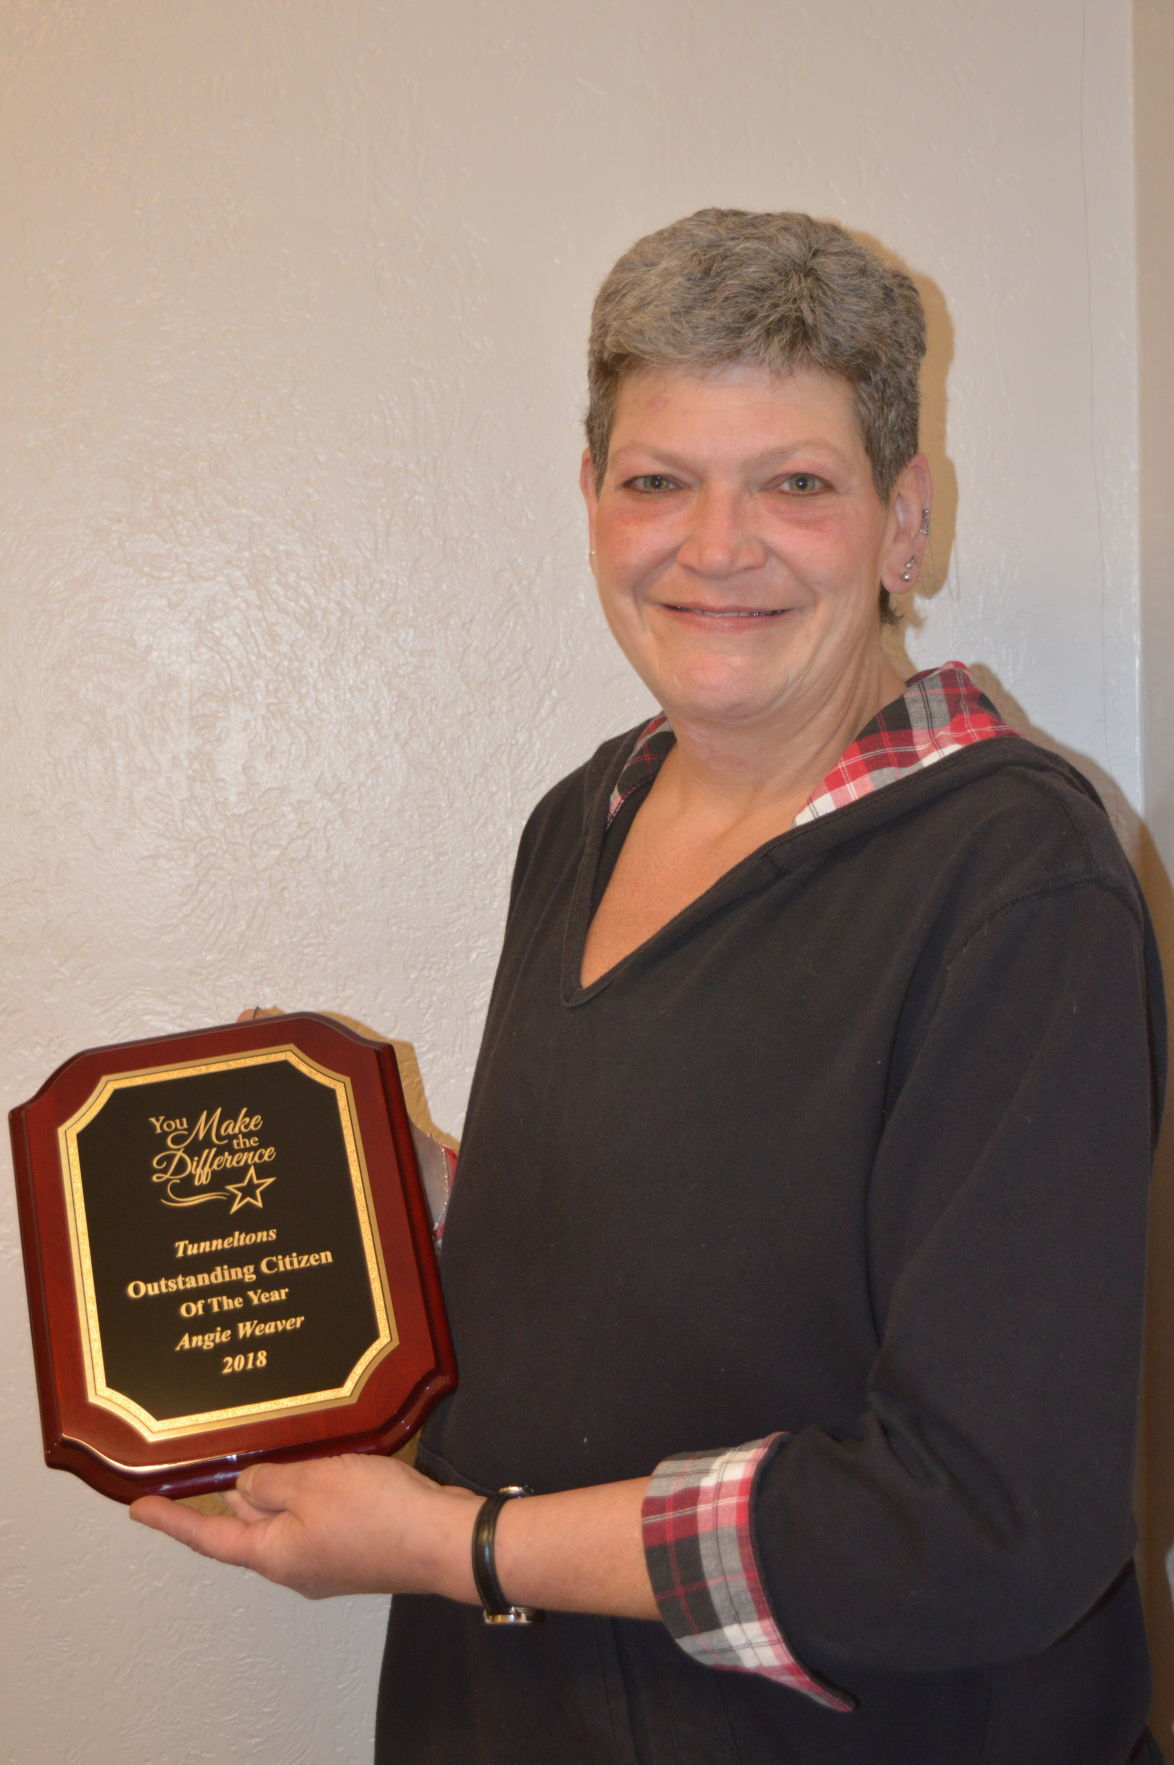 Angie Weaver with plaque